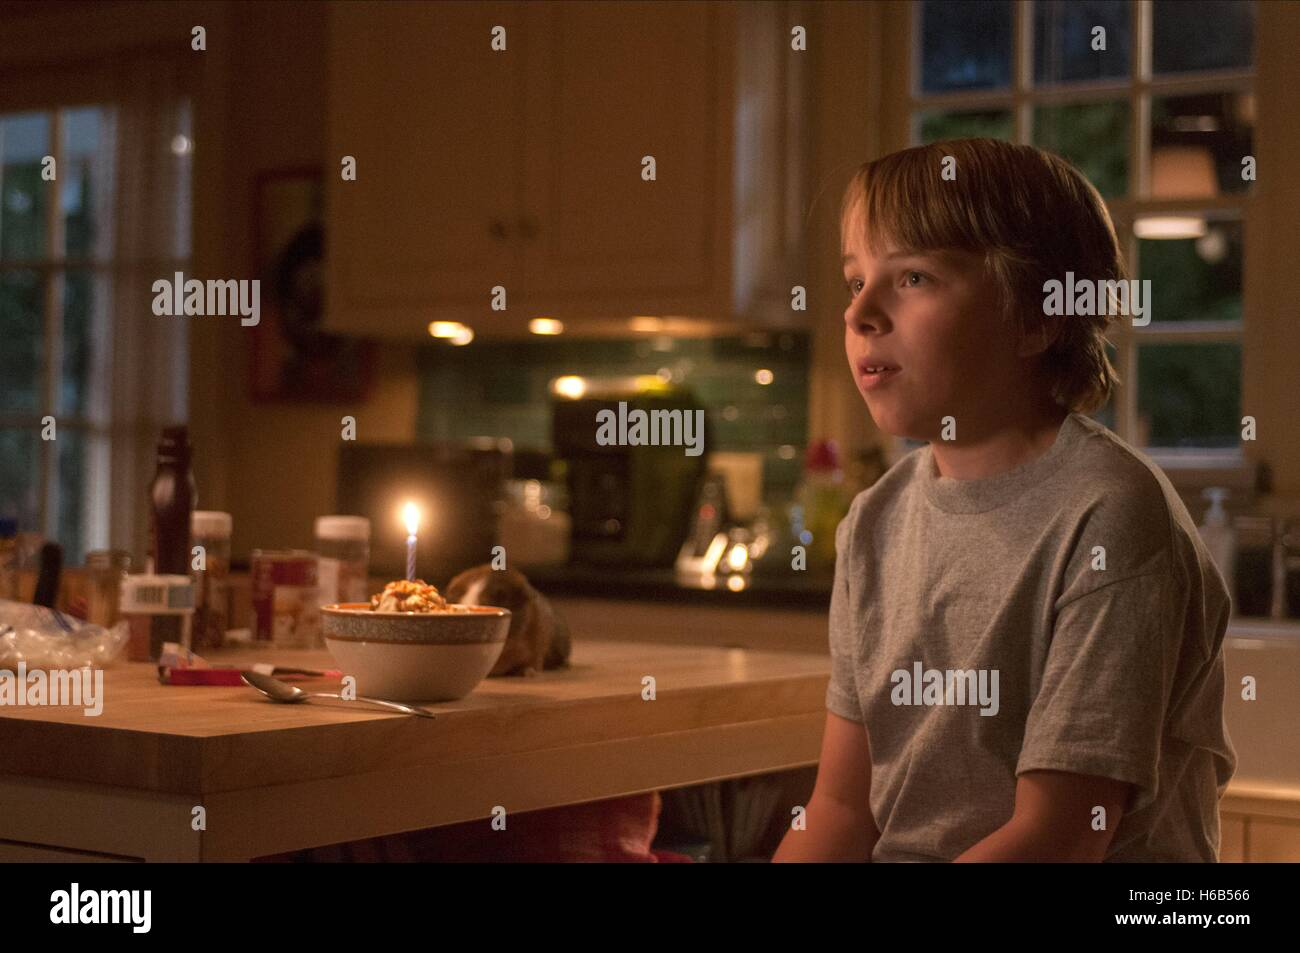 ED OXENBOULD ALEXANDER AND THE TERRIBLE HORRIBLE NO GOOD VERY BAD DAY (2014) - Stock Image